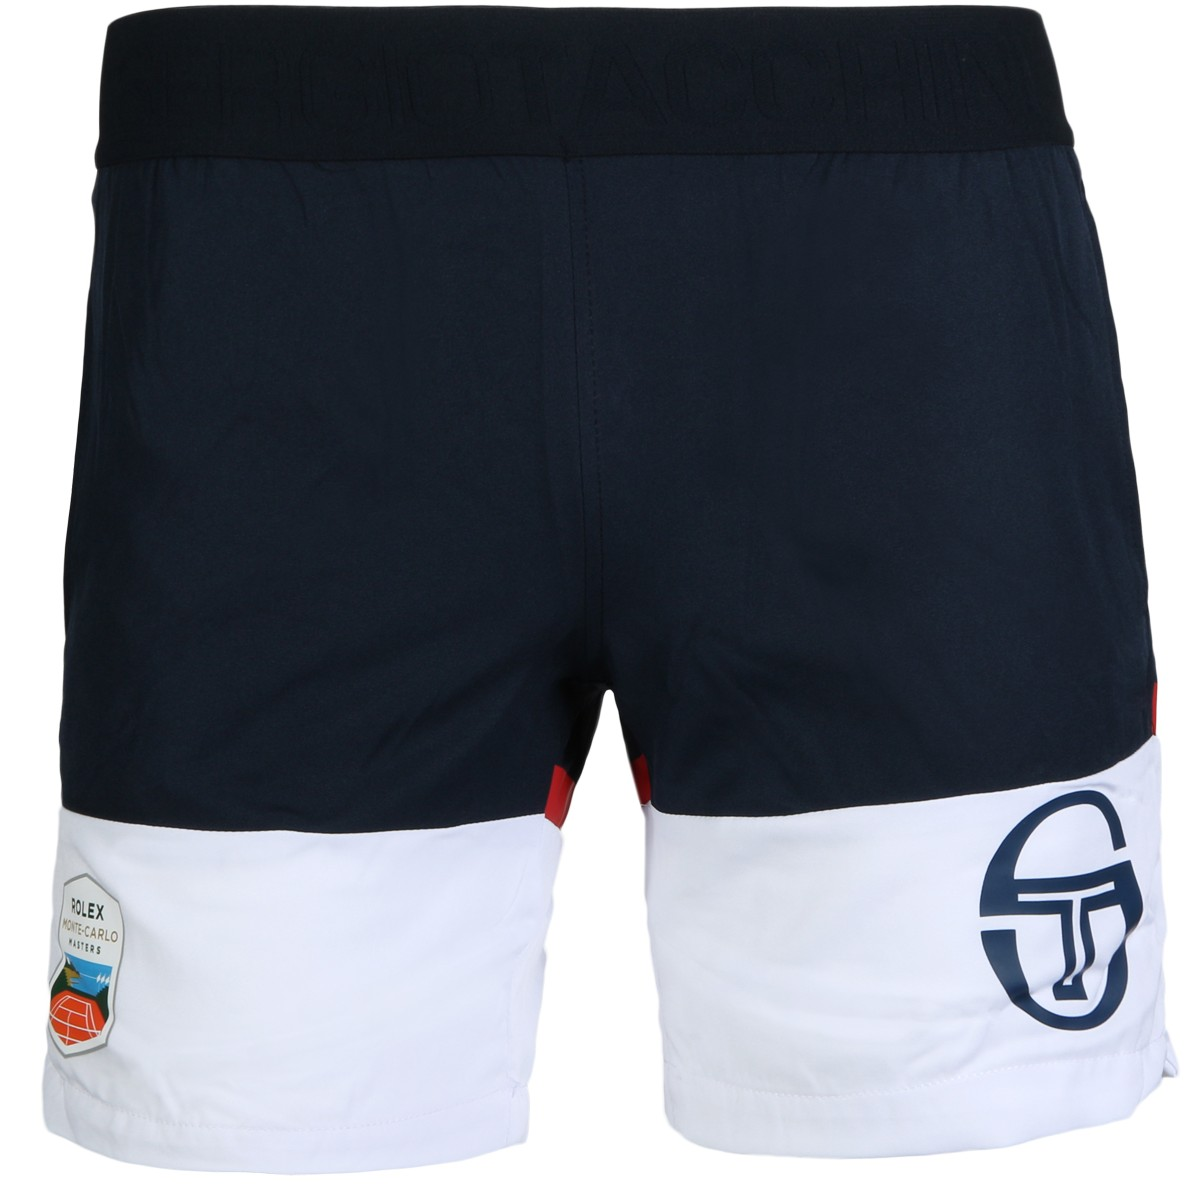 JUNIOR TACCHINI CAMBO STAFF SHORTS